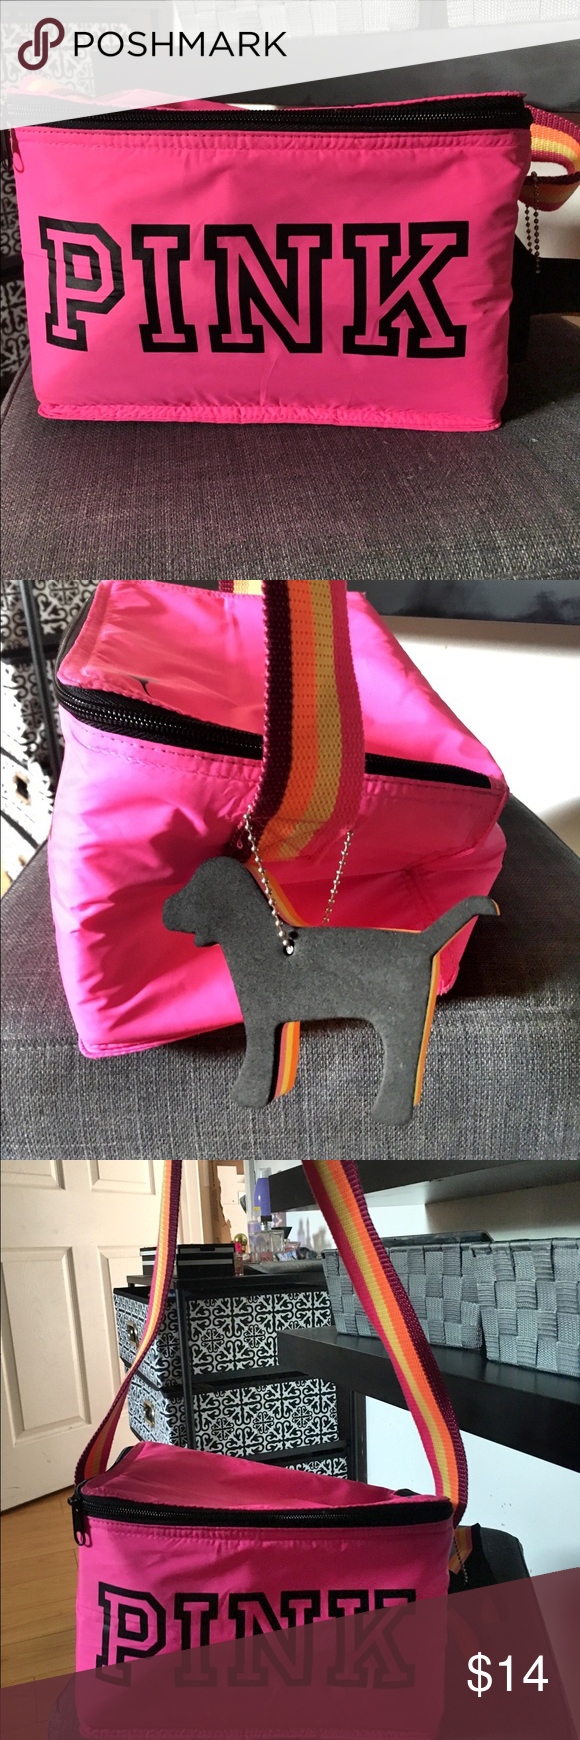 PINK insulated lunch bag Reposh - Cute insulated PINK bag. This bag is vibrant and perfect for a beach trip. Includes mini dog key chain. In perfect condition- just a little brighter than my liking. Asking what I paid. Price is firm unless bundling PINK Victoria's Secret Accessories